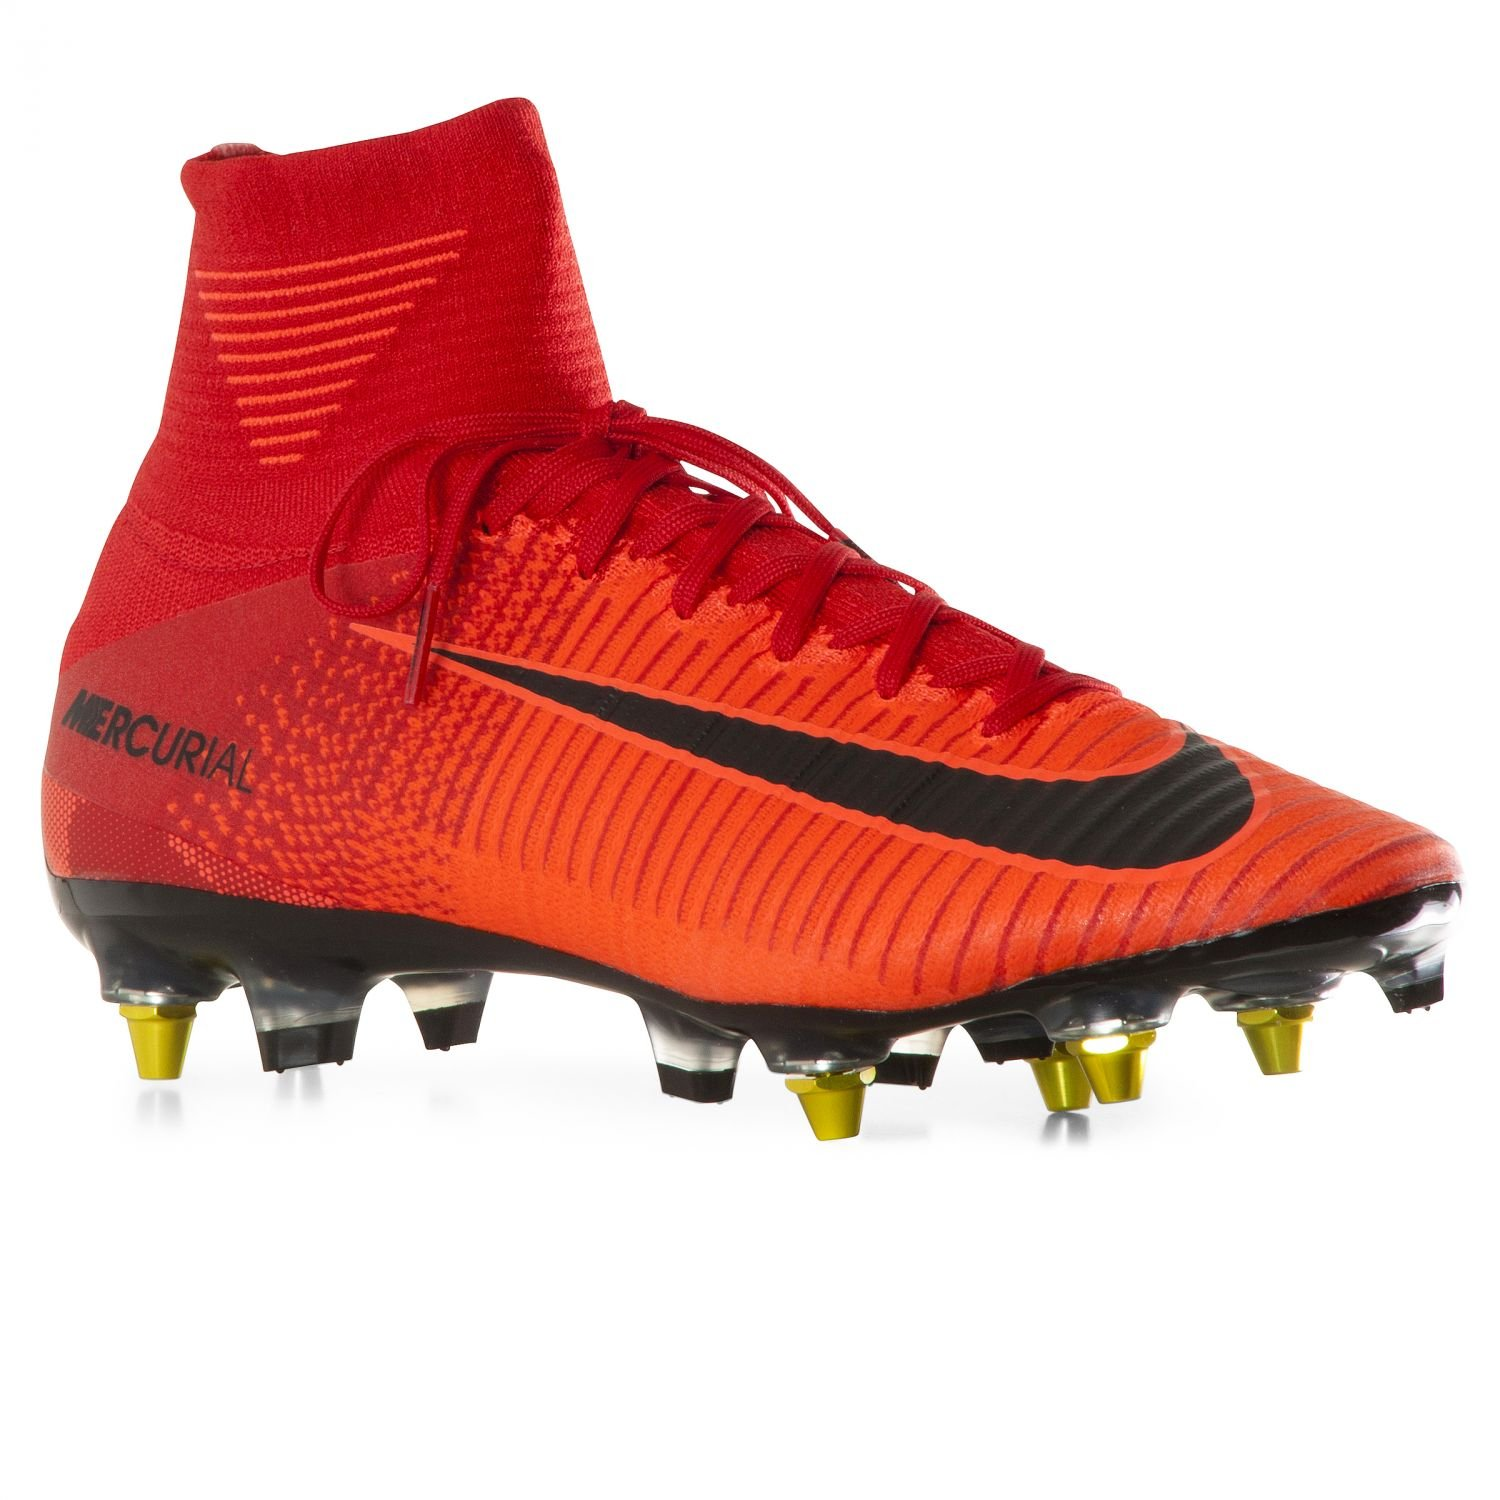 c1f6cf7a4b9e Buy NIKE Men's Mercurial Superfly Anti-Clog (SG-Pro) Soft-Ground Soccer  Cleat (Sz. 9) Red, Bright Crimson Online at Low Prices in India - Amazon.in